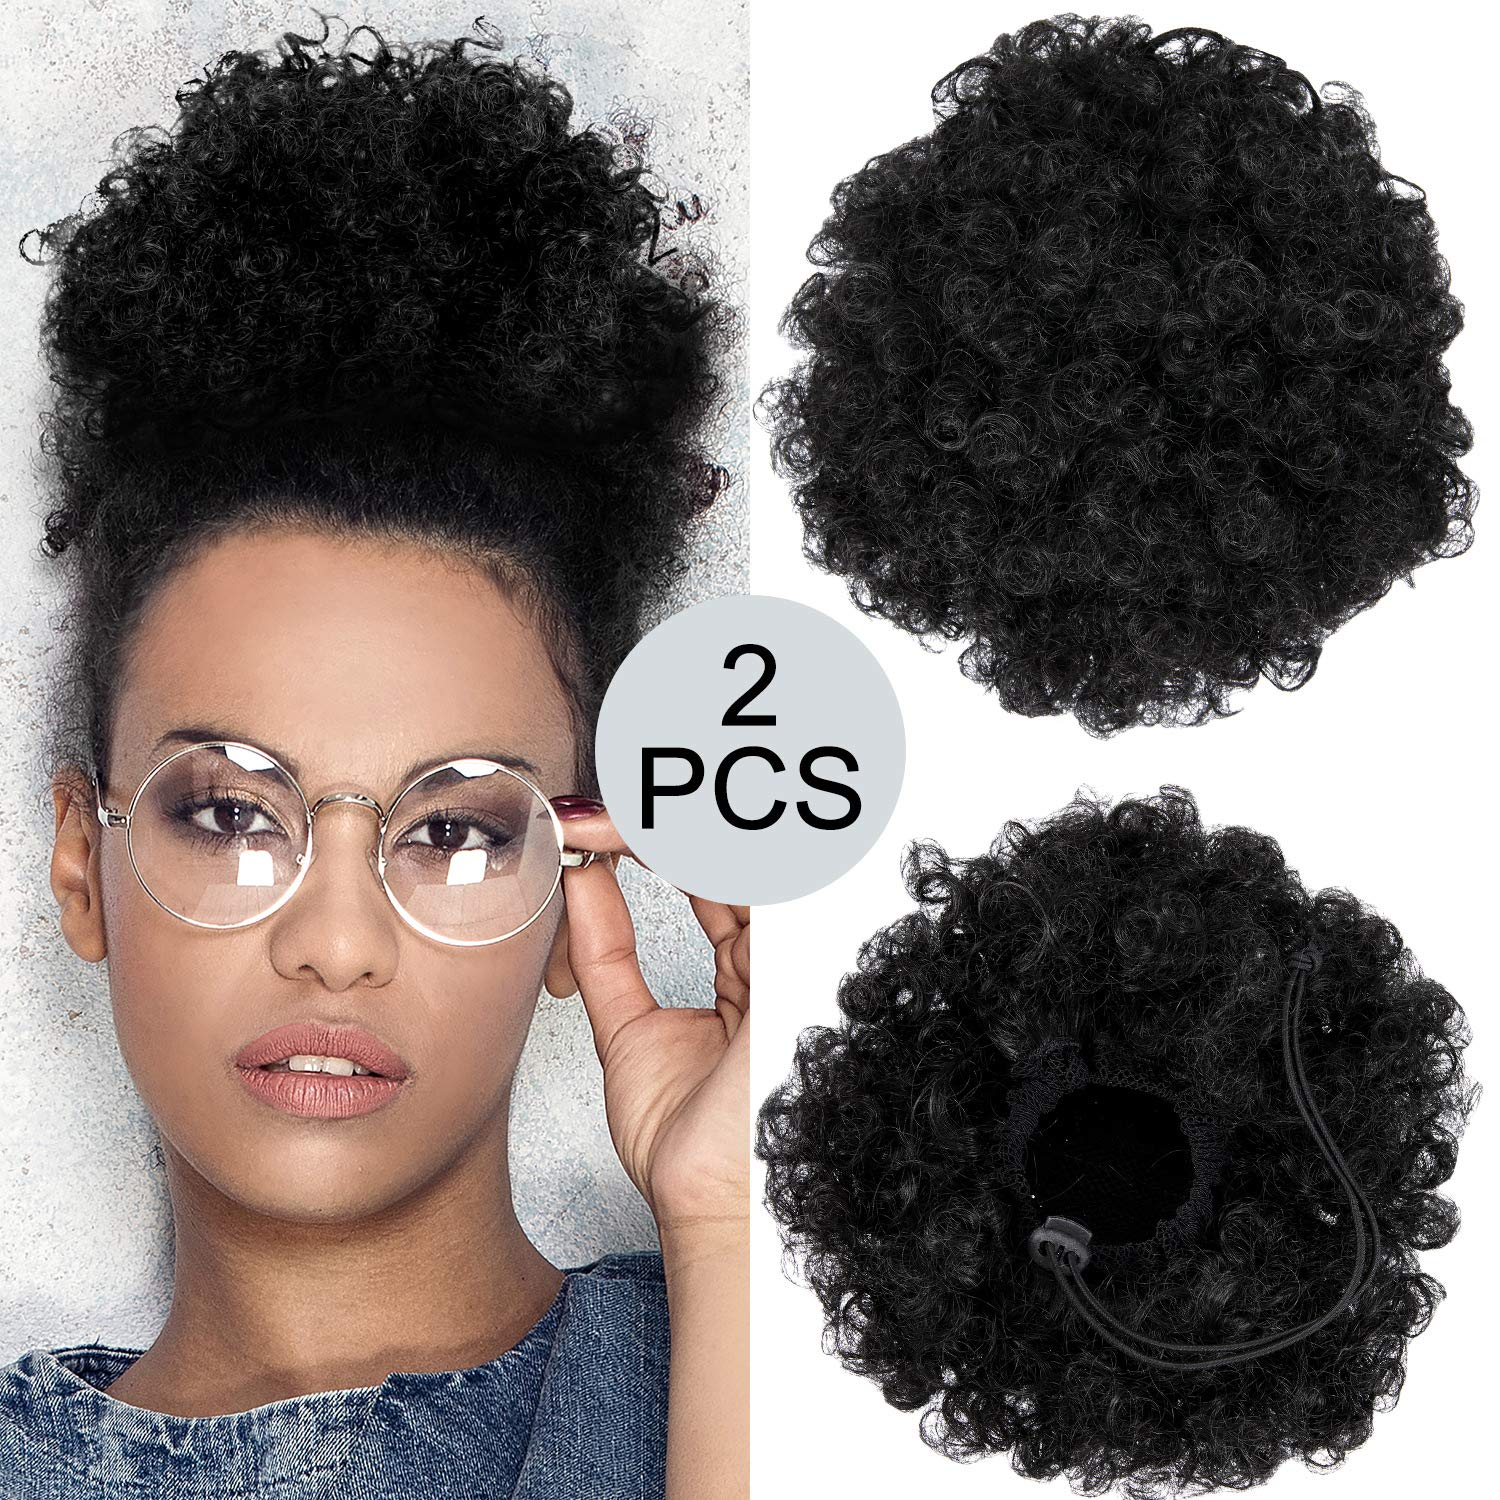 2 Pieces Afro Puff Drawstring Ponytail Synthetic Short Curly Hair Afro Bun Extension Afro Chignon Hairpieces Wig Updo Hair Extensions (Black-1b) by WILLBOND